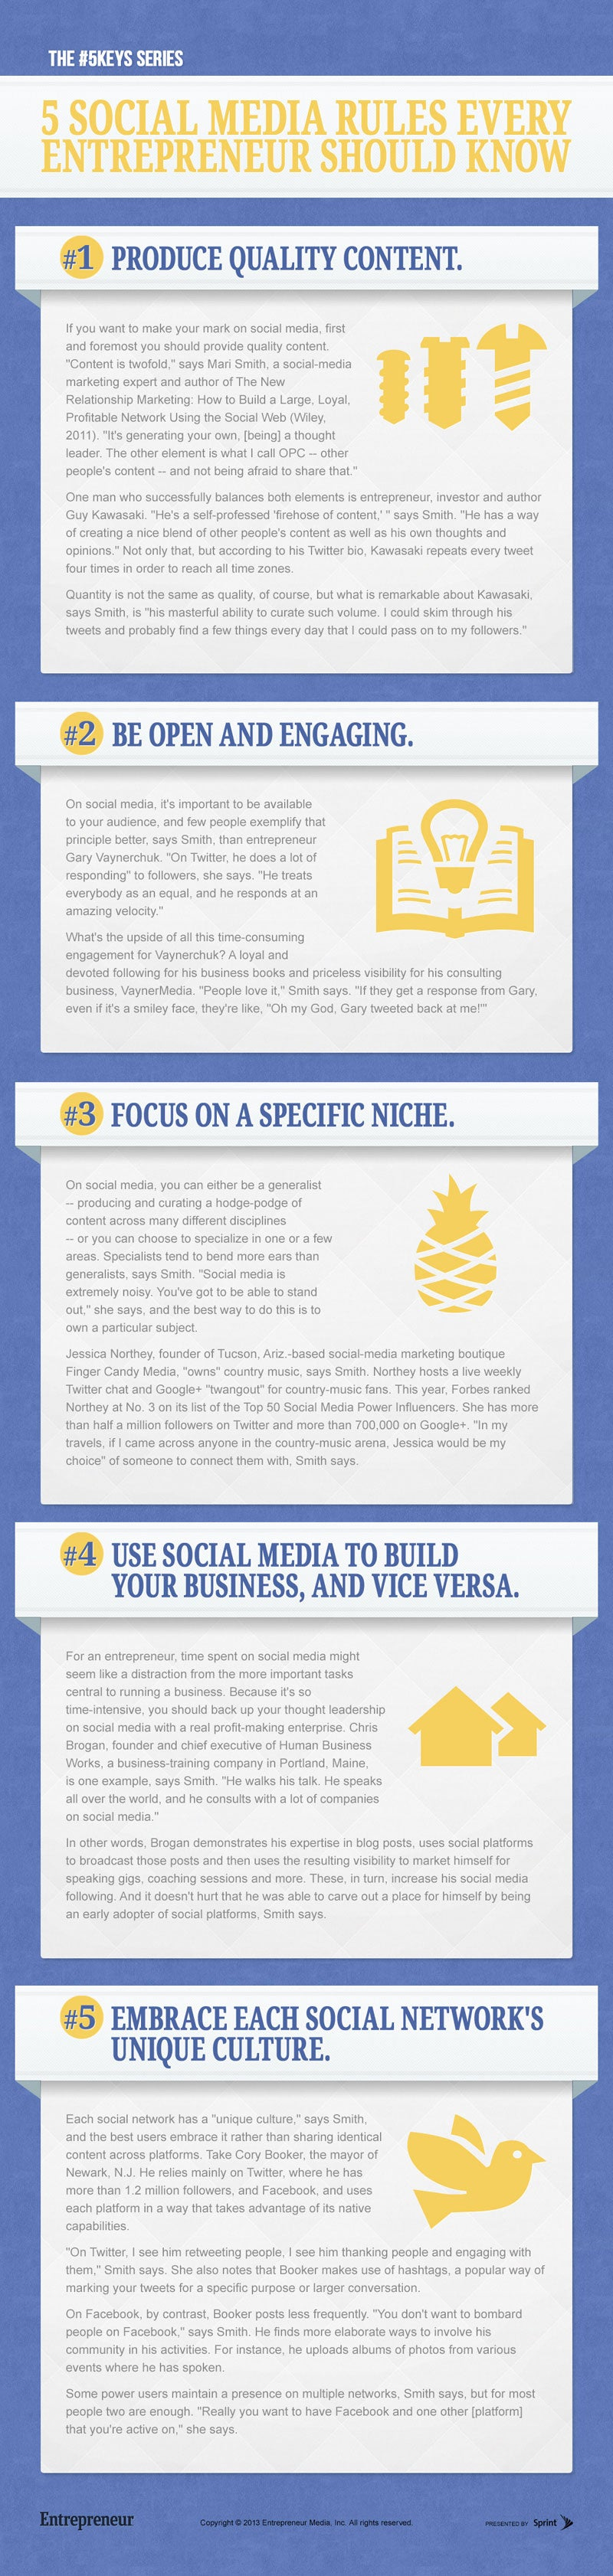 5 Social Media Rules Every Entrepreneur Should Know